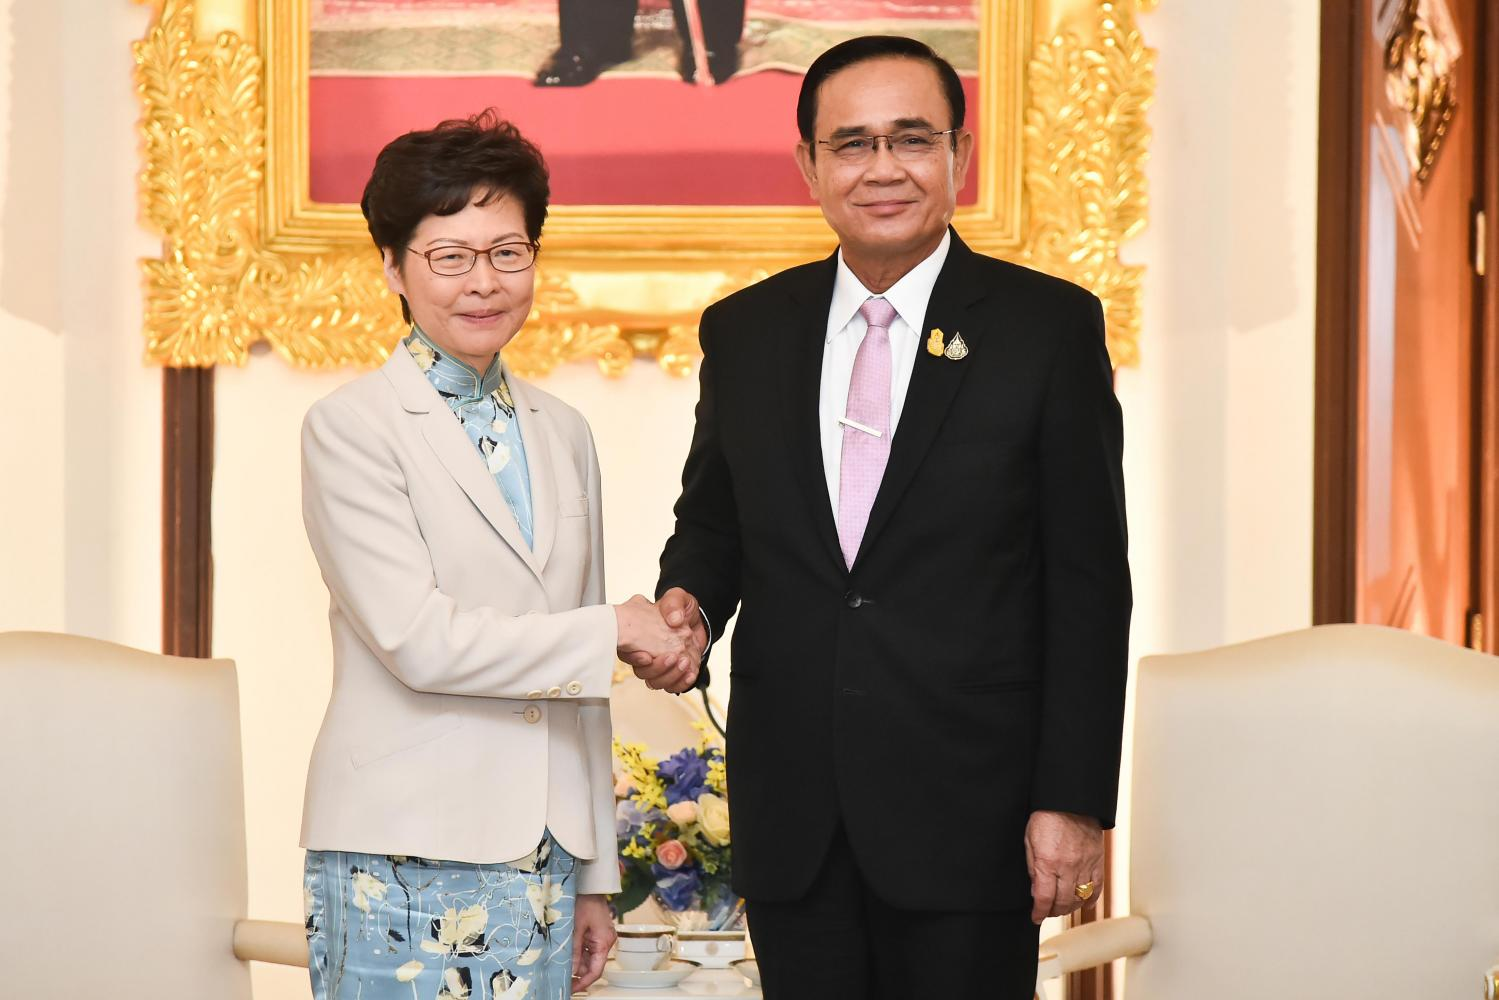 Hong Kong Chief Executive Carrie Lam meets Prime Minister Prayut Chan-o-cha at Government House on Friday. (Government House photo)